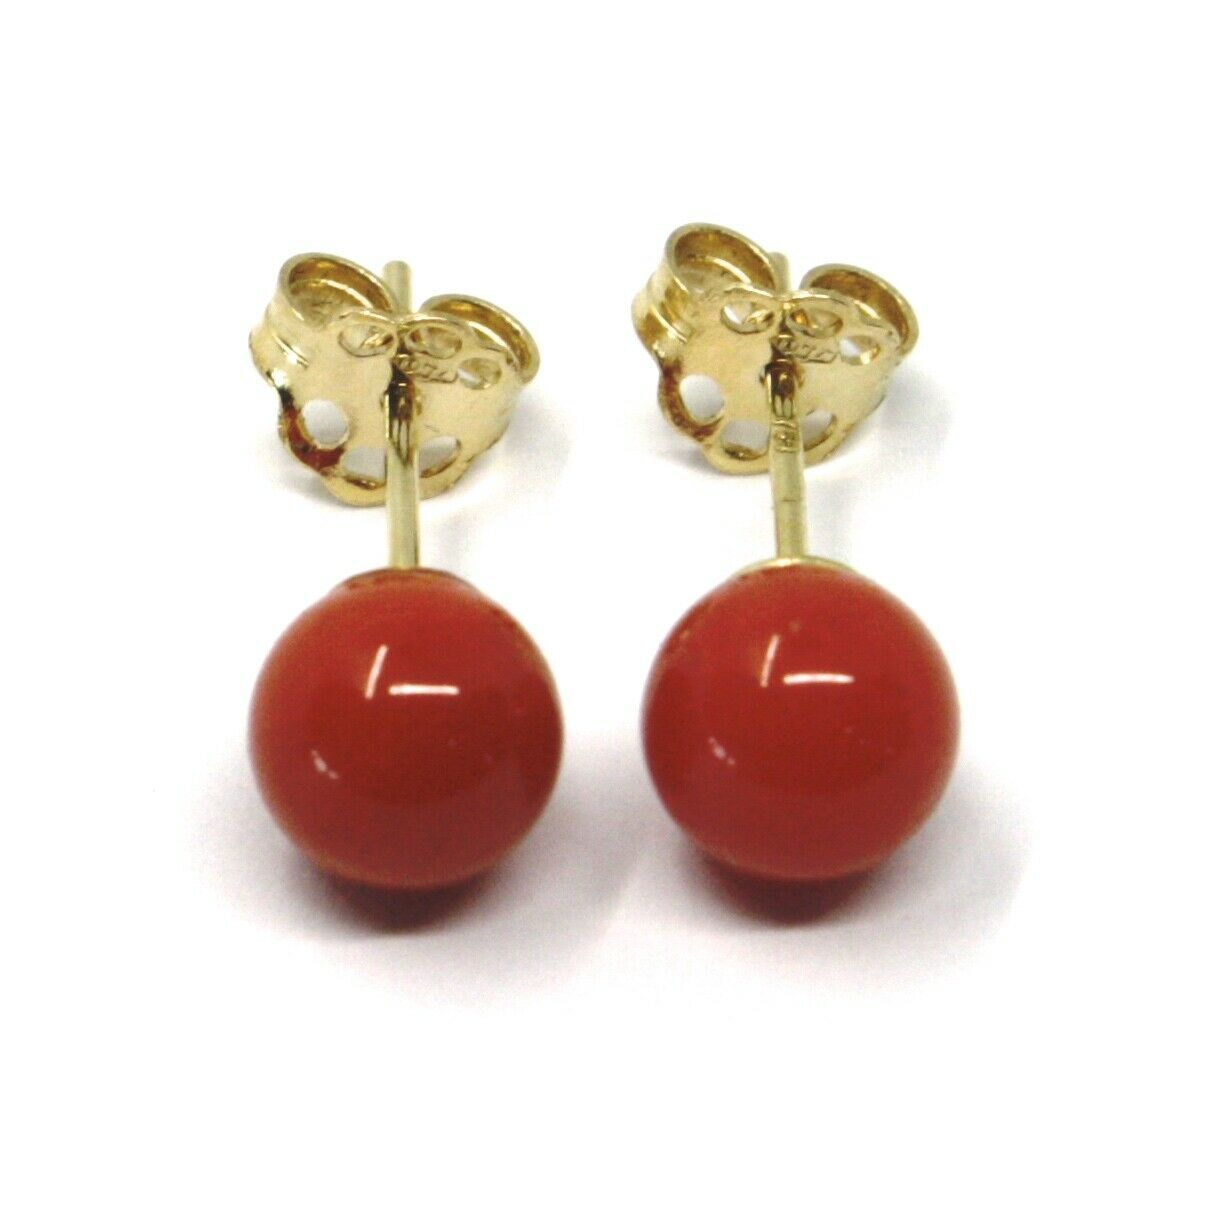 18K YELLOW GOLD BALLS SPHERES RED CORAL BUTTON EARRINGS, 6 MM, 0.24 INCHES